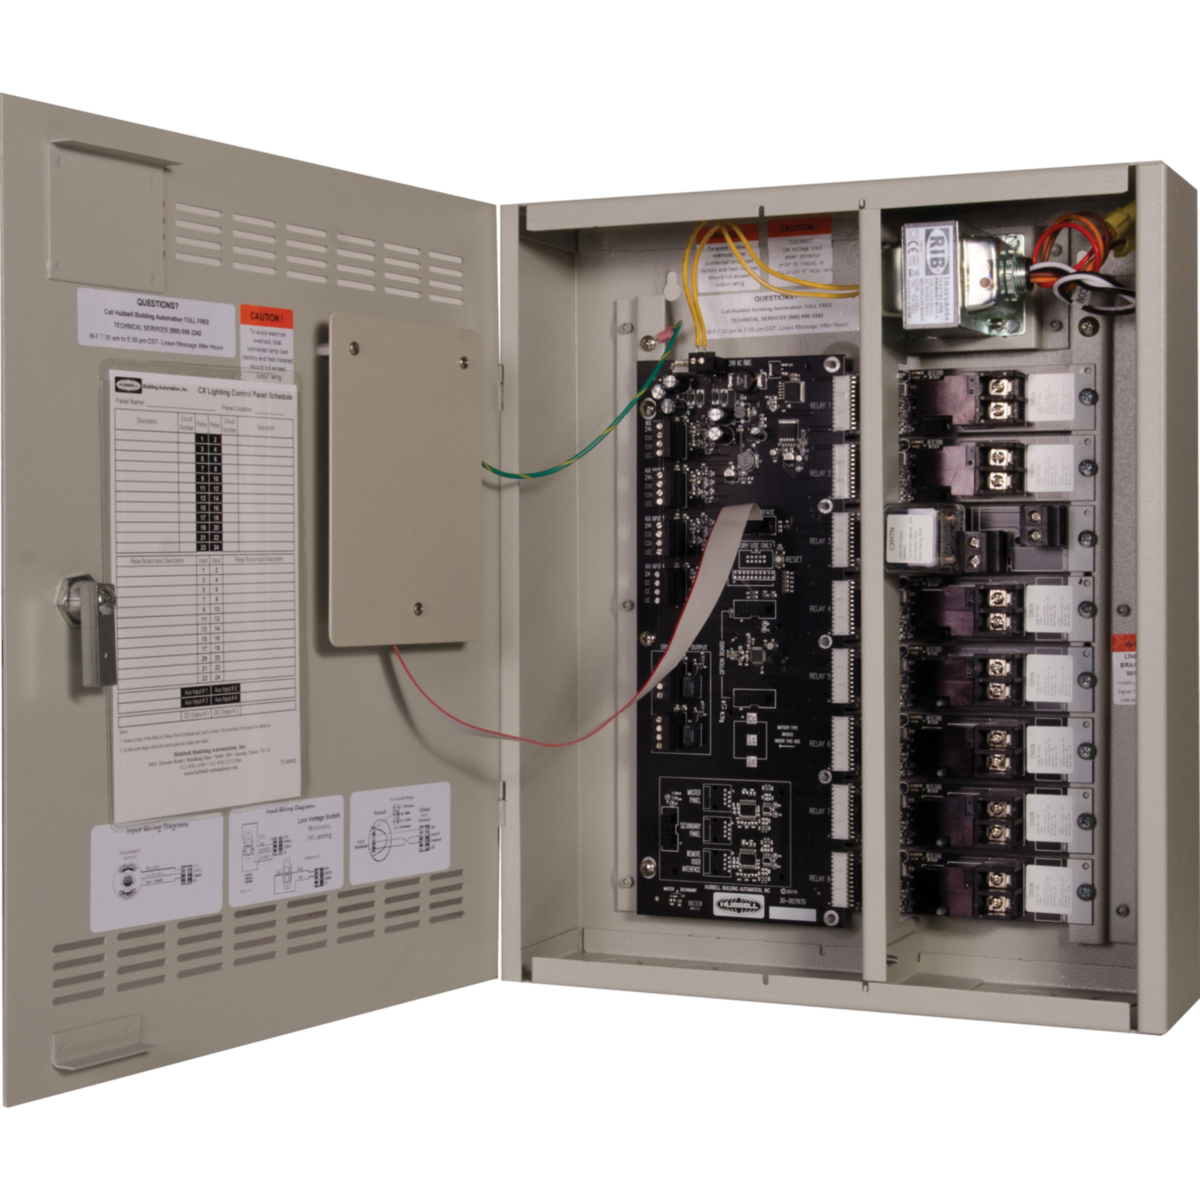 Cx Lighting Control Panels 4 8 16 And 24 Relays Hubbell